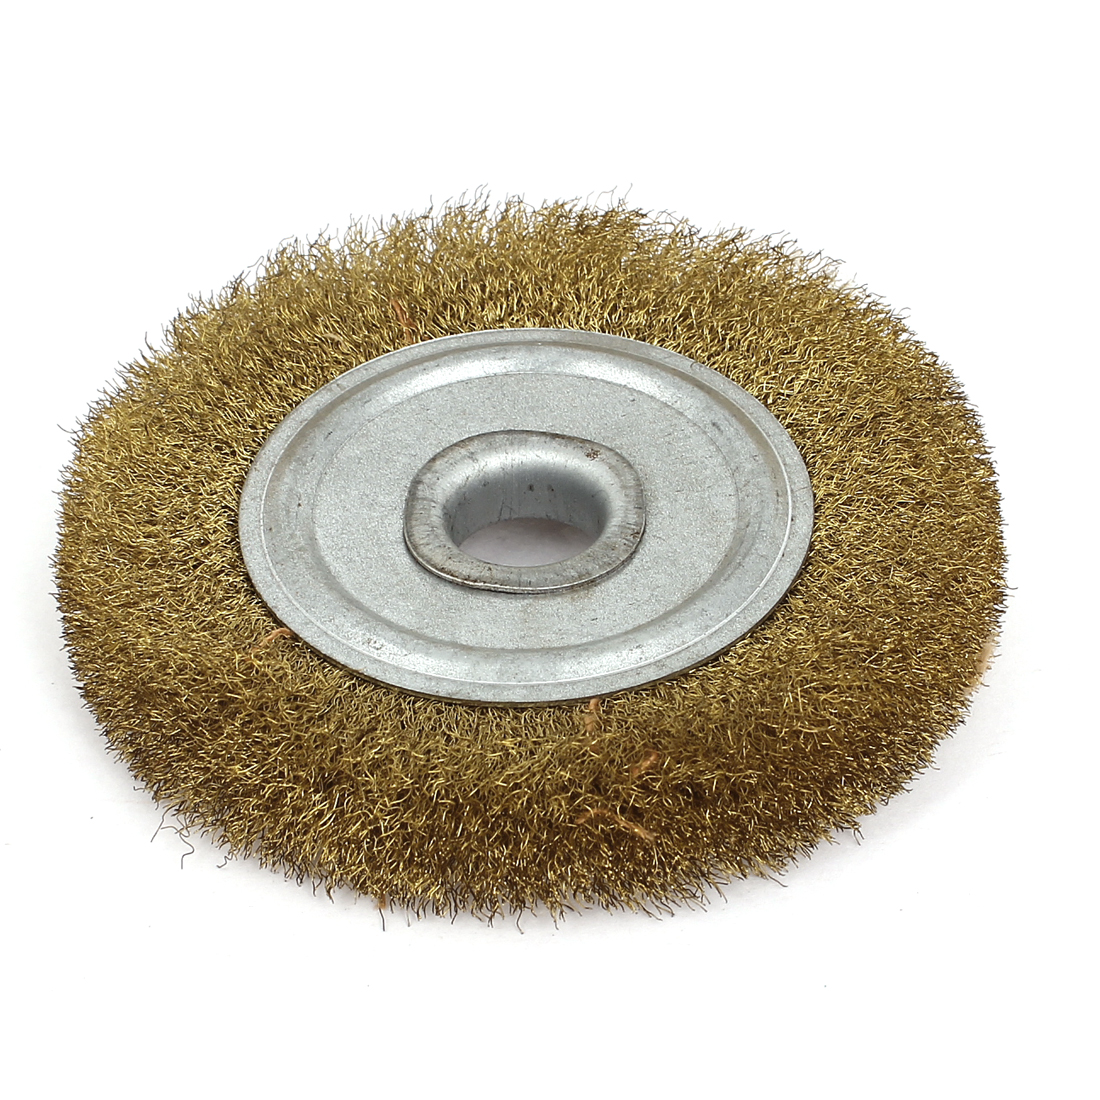 "100mm 4"" Diameter 5/8"" Arbor Crimped Copper Wire Polishing Grinding Wheel Brush"